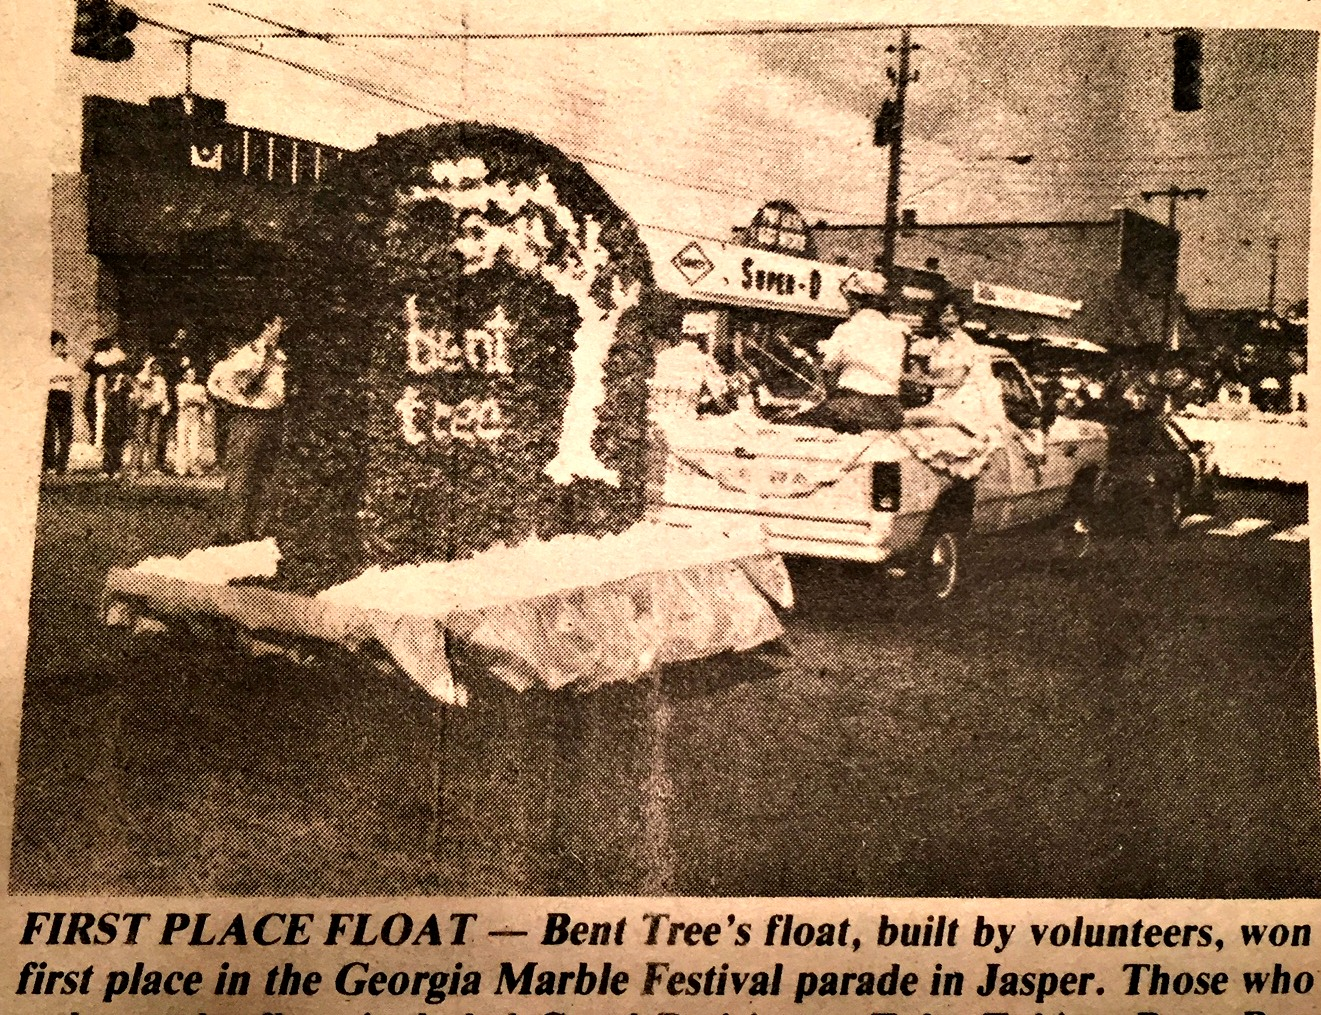 Bent Tree's logo float won first place during the 1984 Georgia Marble Festival parade